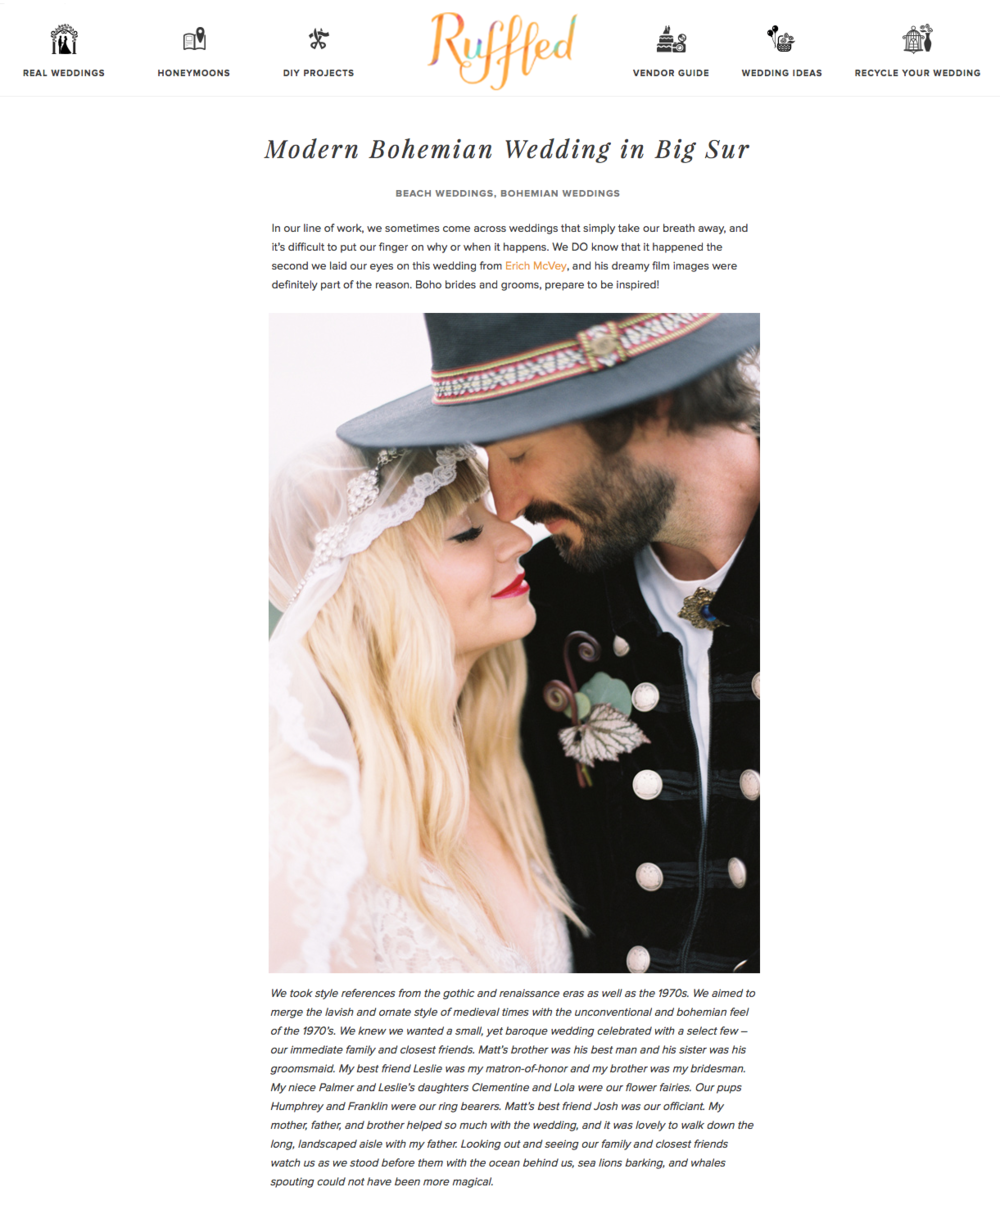 http://ruffledblog.com/modern-bohemian-wedding-in-big-sur/